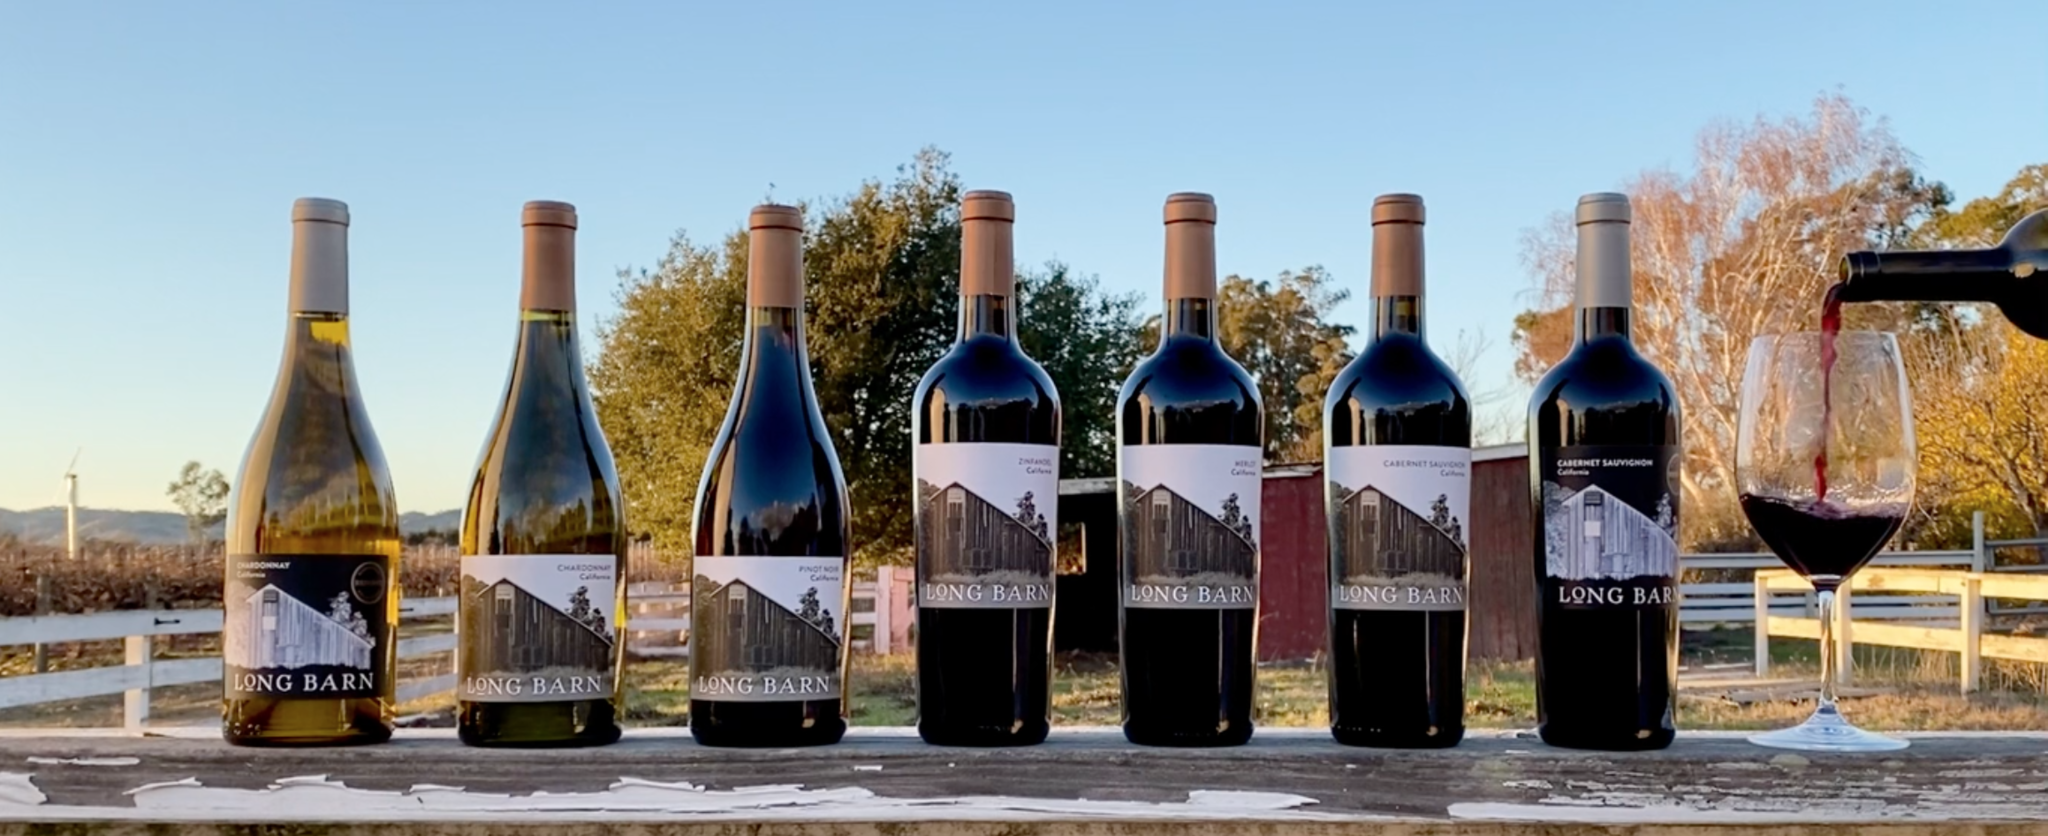 Long Barn Winery Cover Image